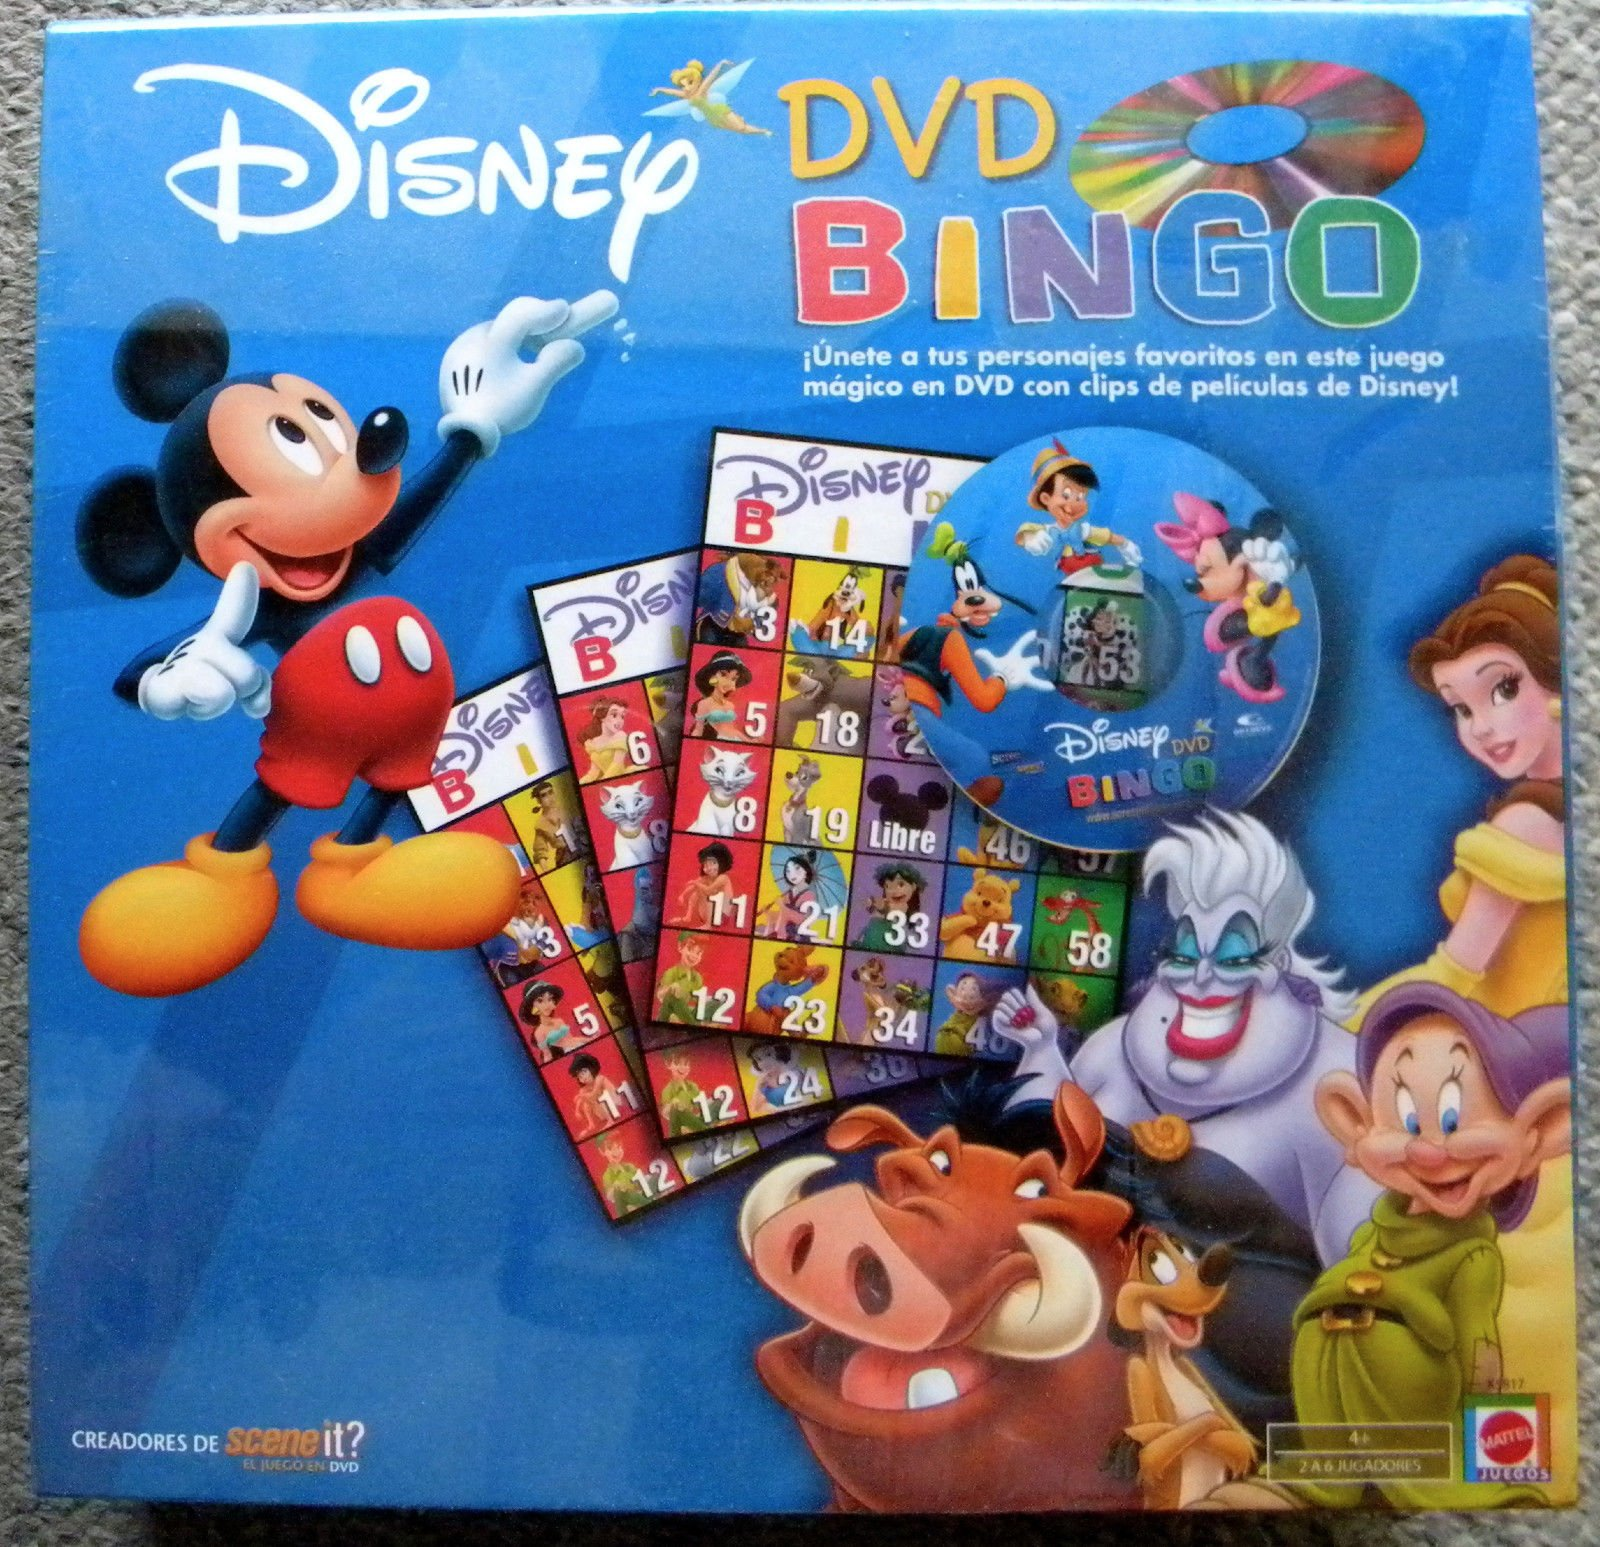 graphic about Disney Bingo Printable titled Economical Dvd Bingo, discover Dvd Bingo offers upon line at